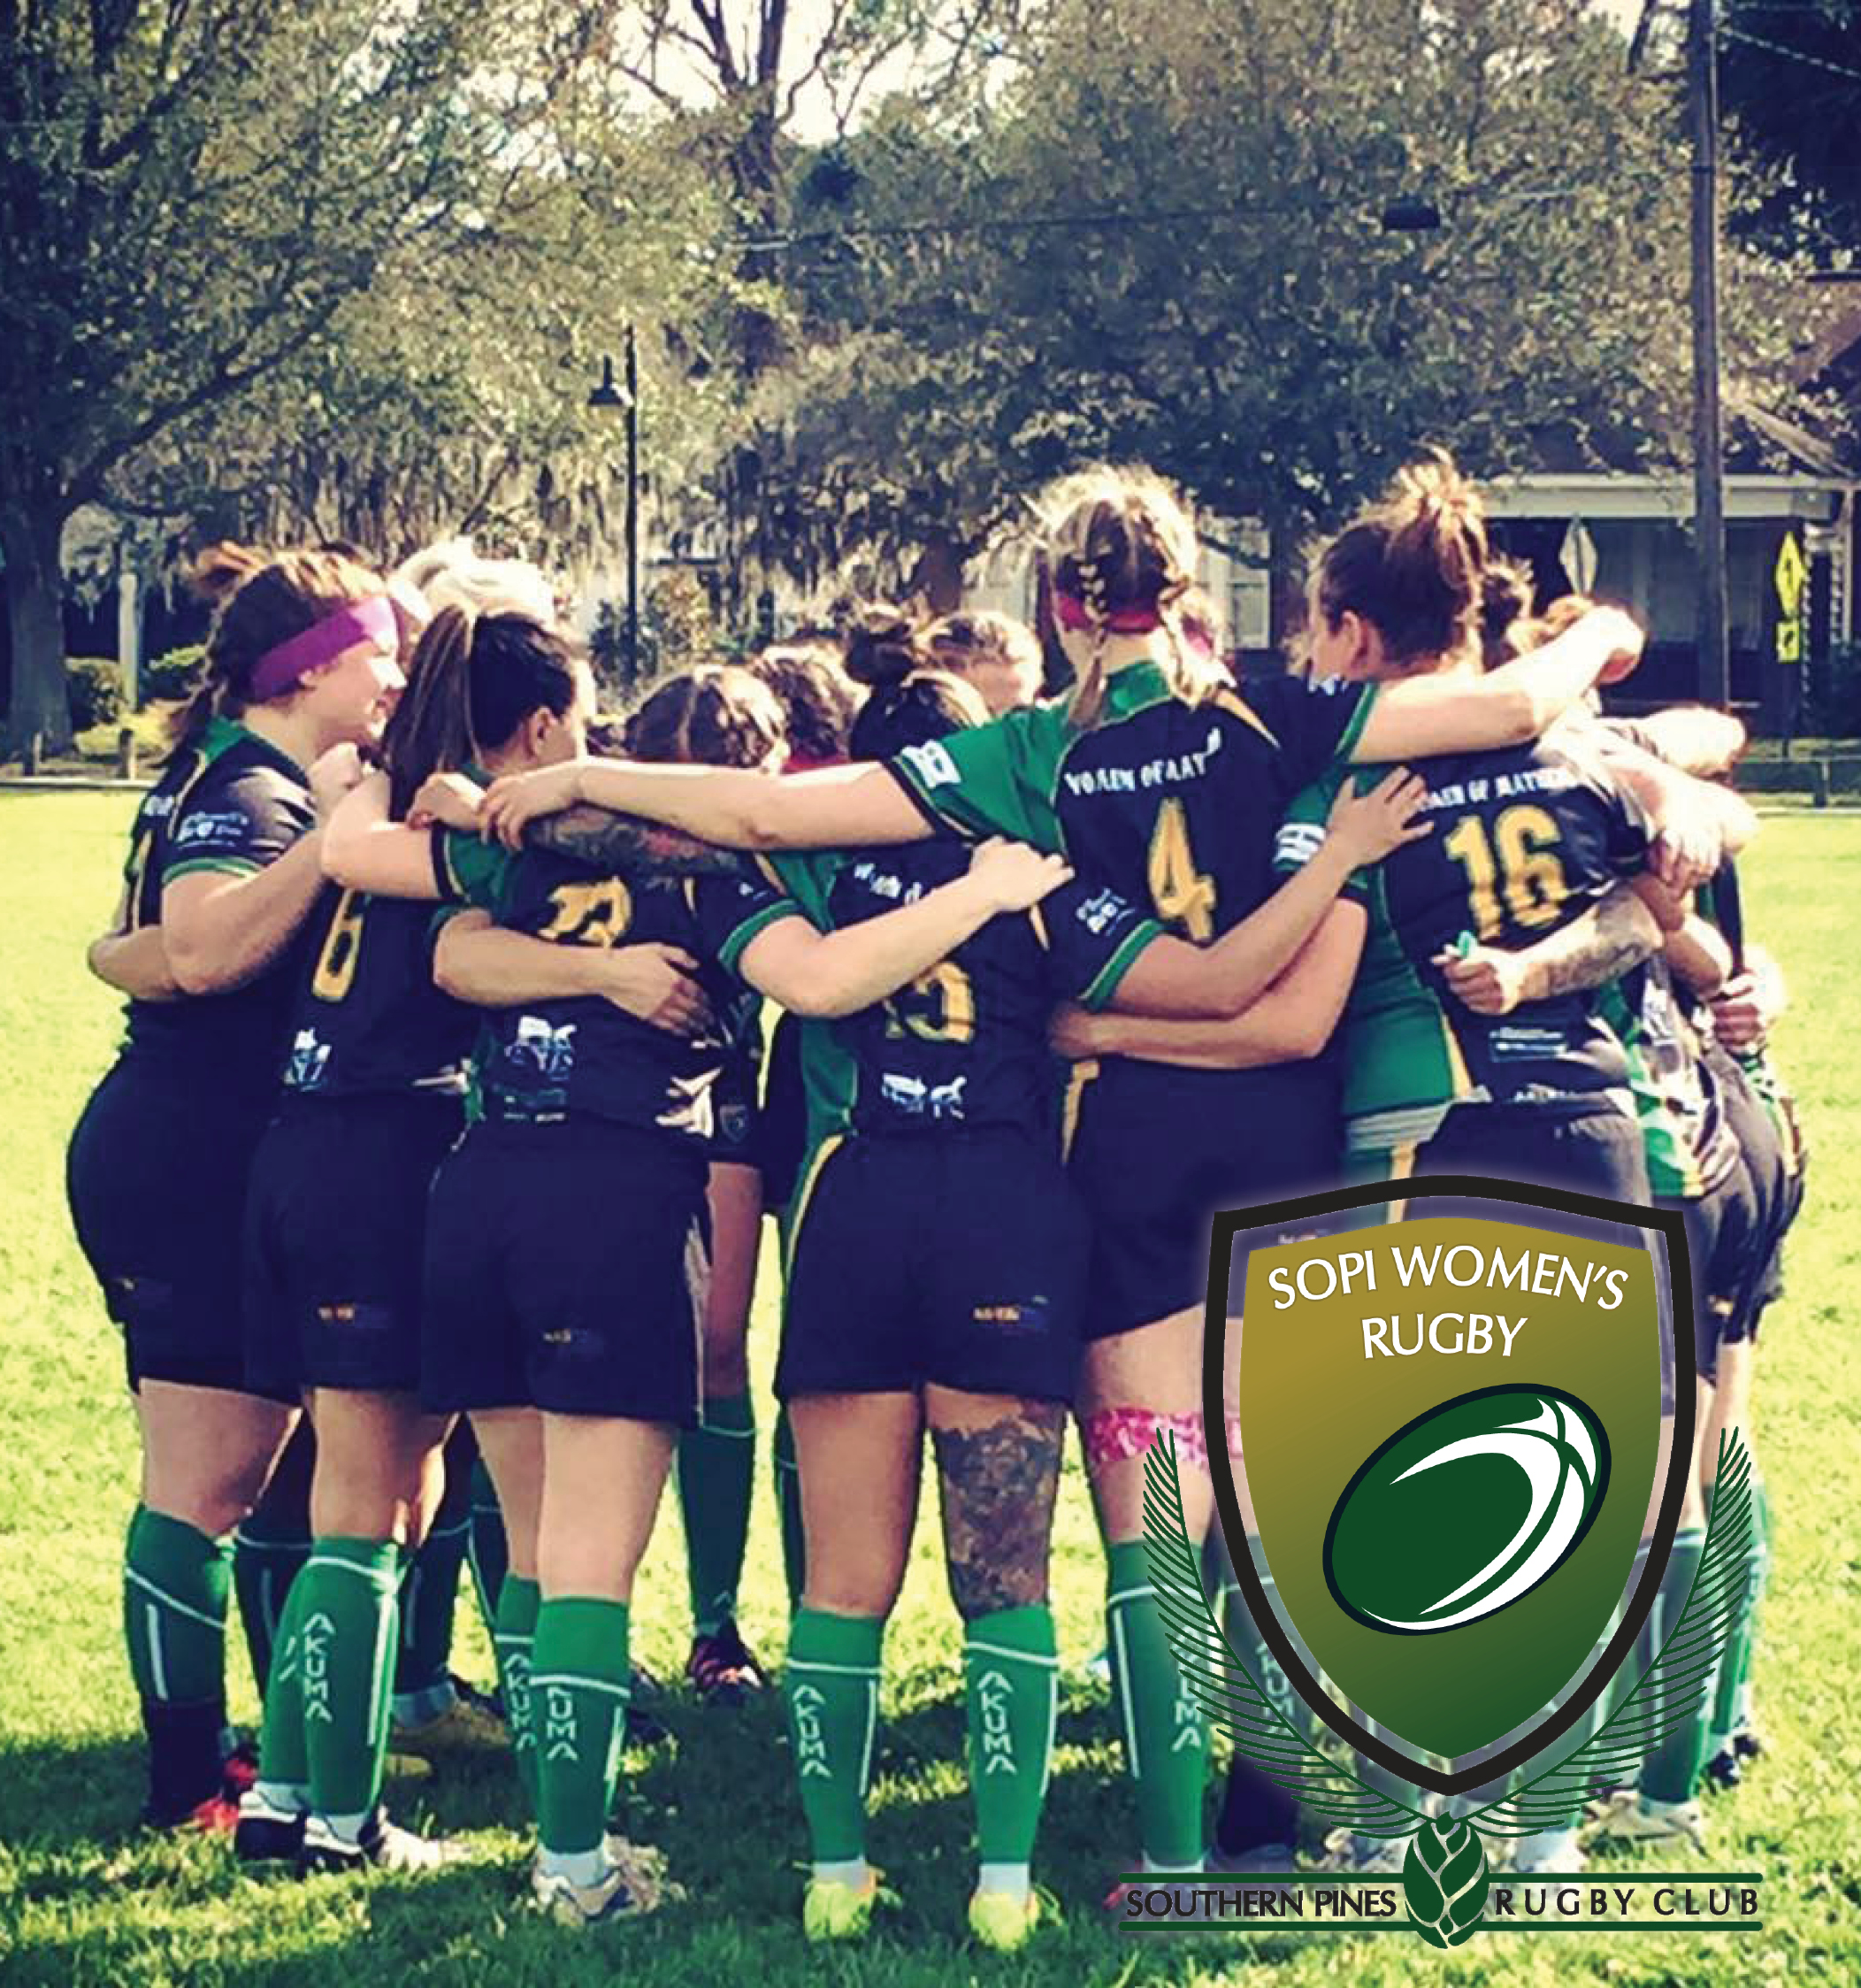 Southern Pines Rugby